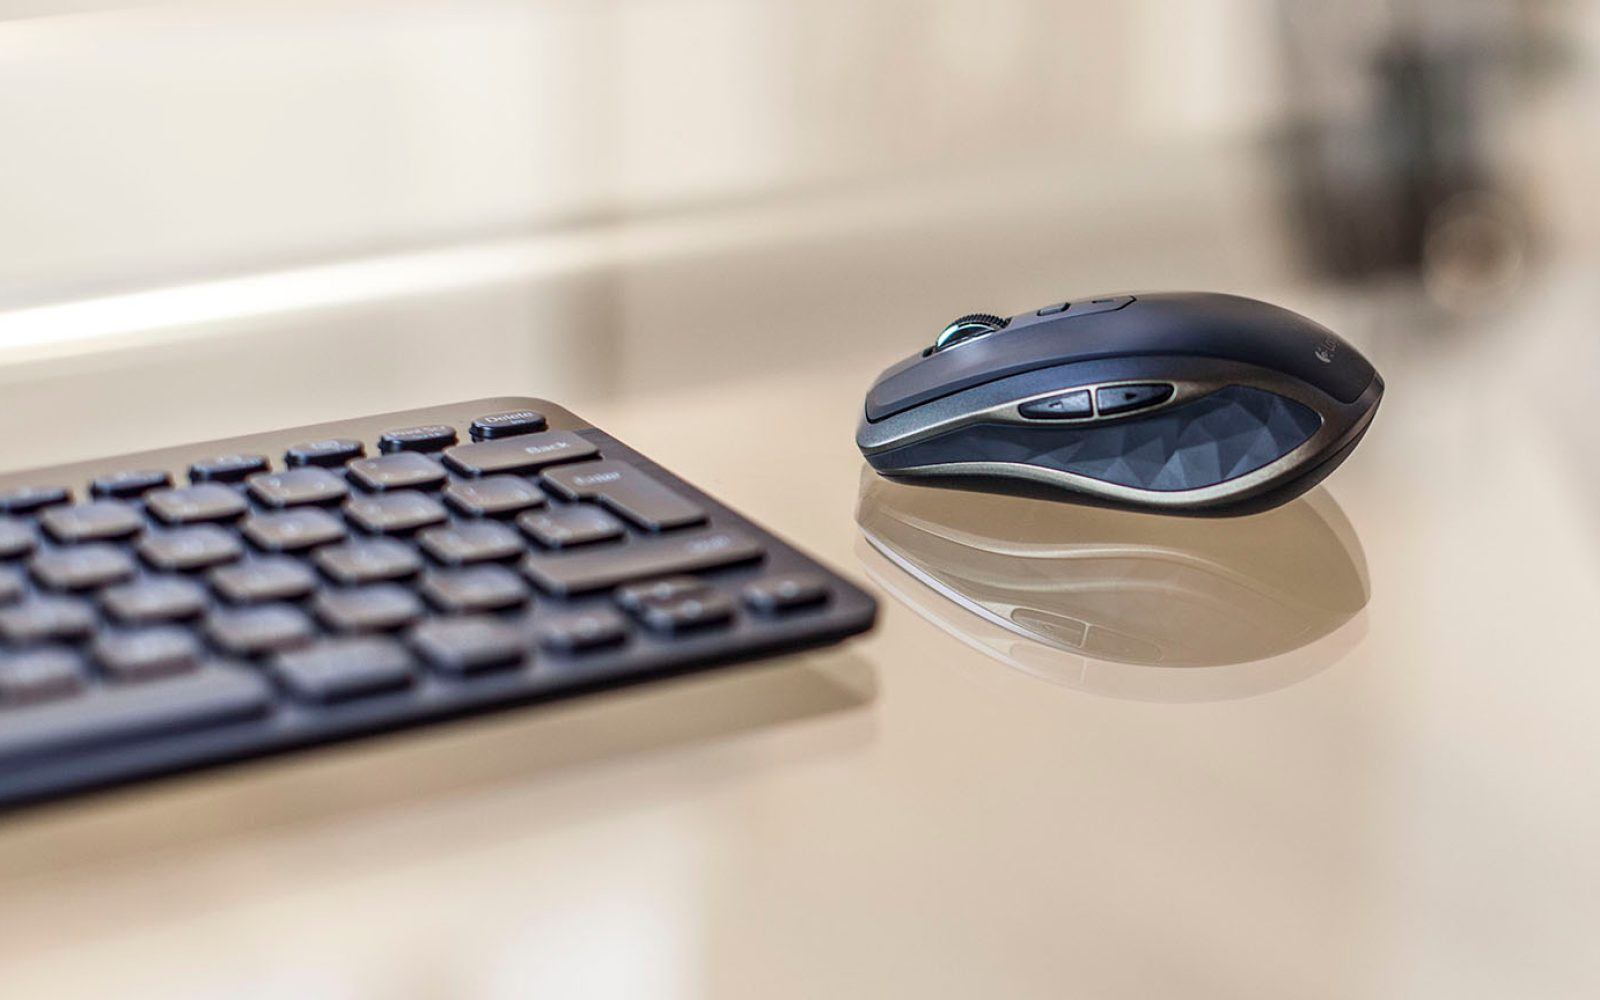 Logitech's new Anywhere 2 wireless mouse follows the design and